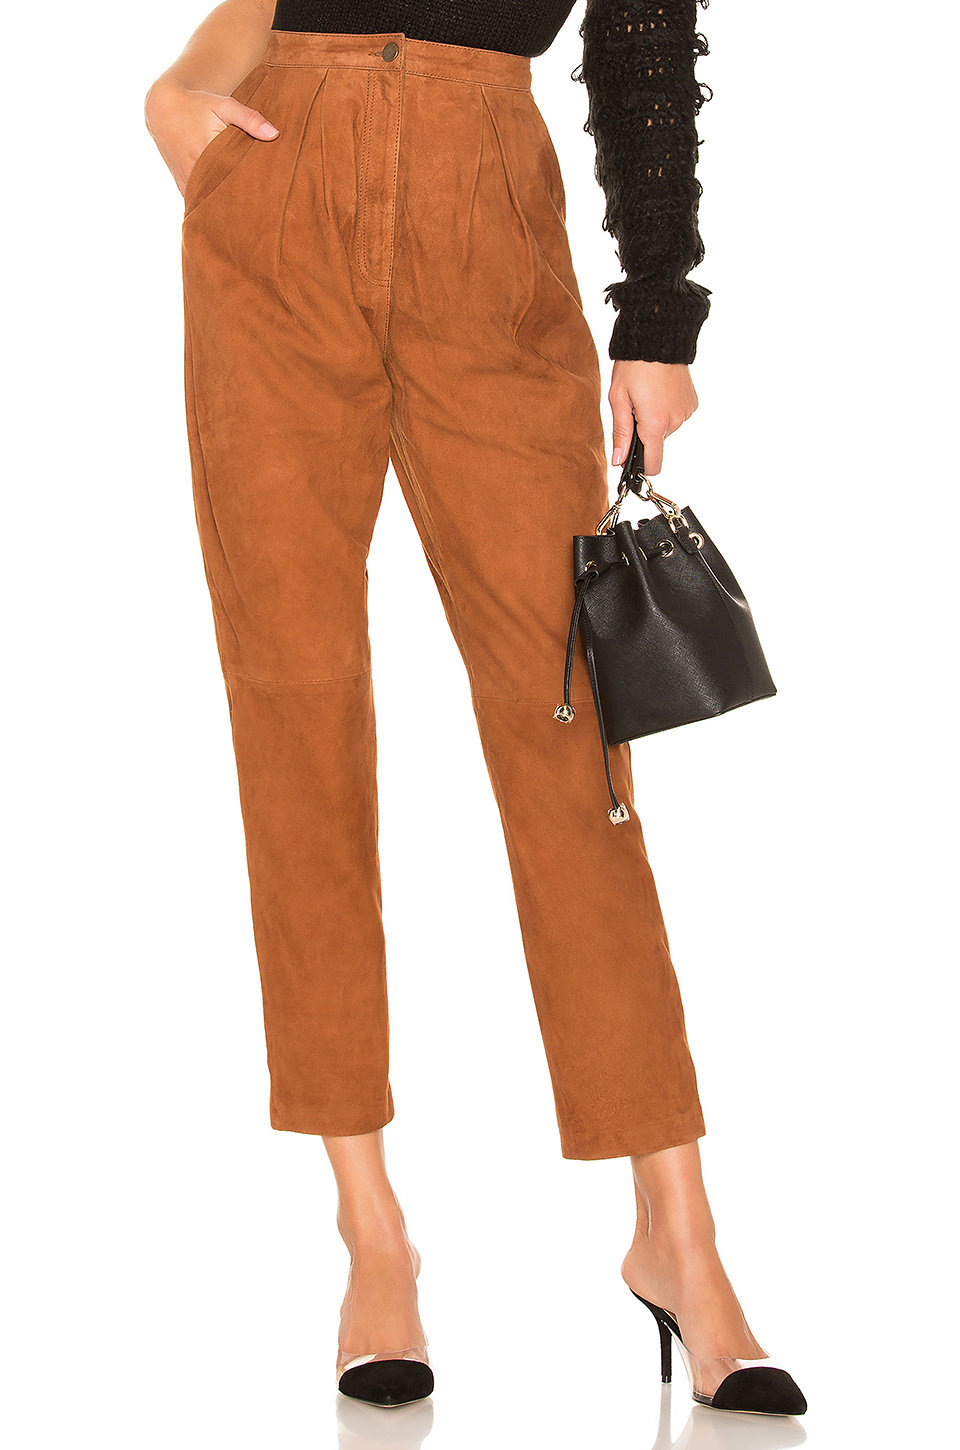 Axel Suede Pant, $84, Revolve